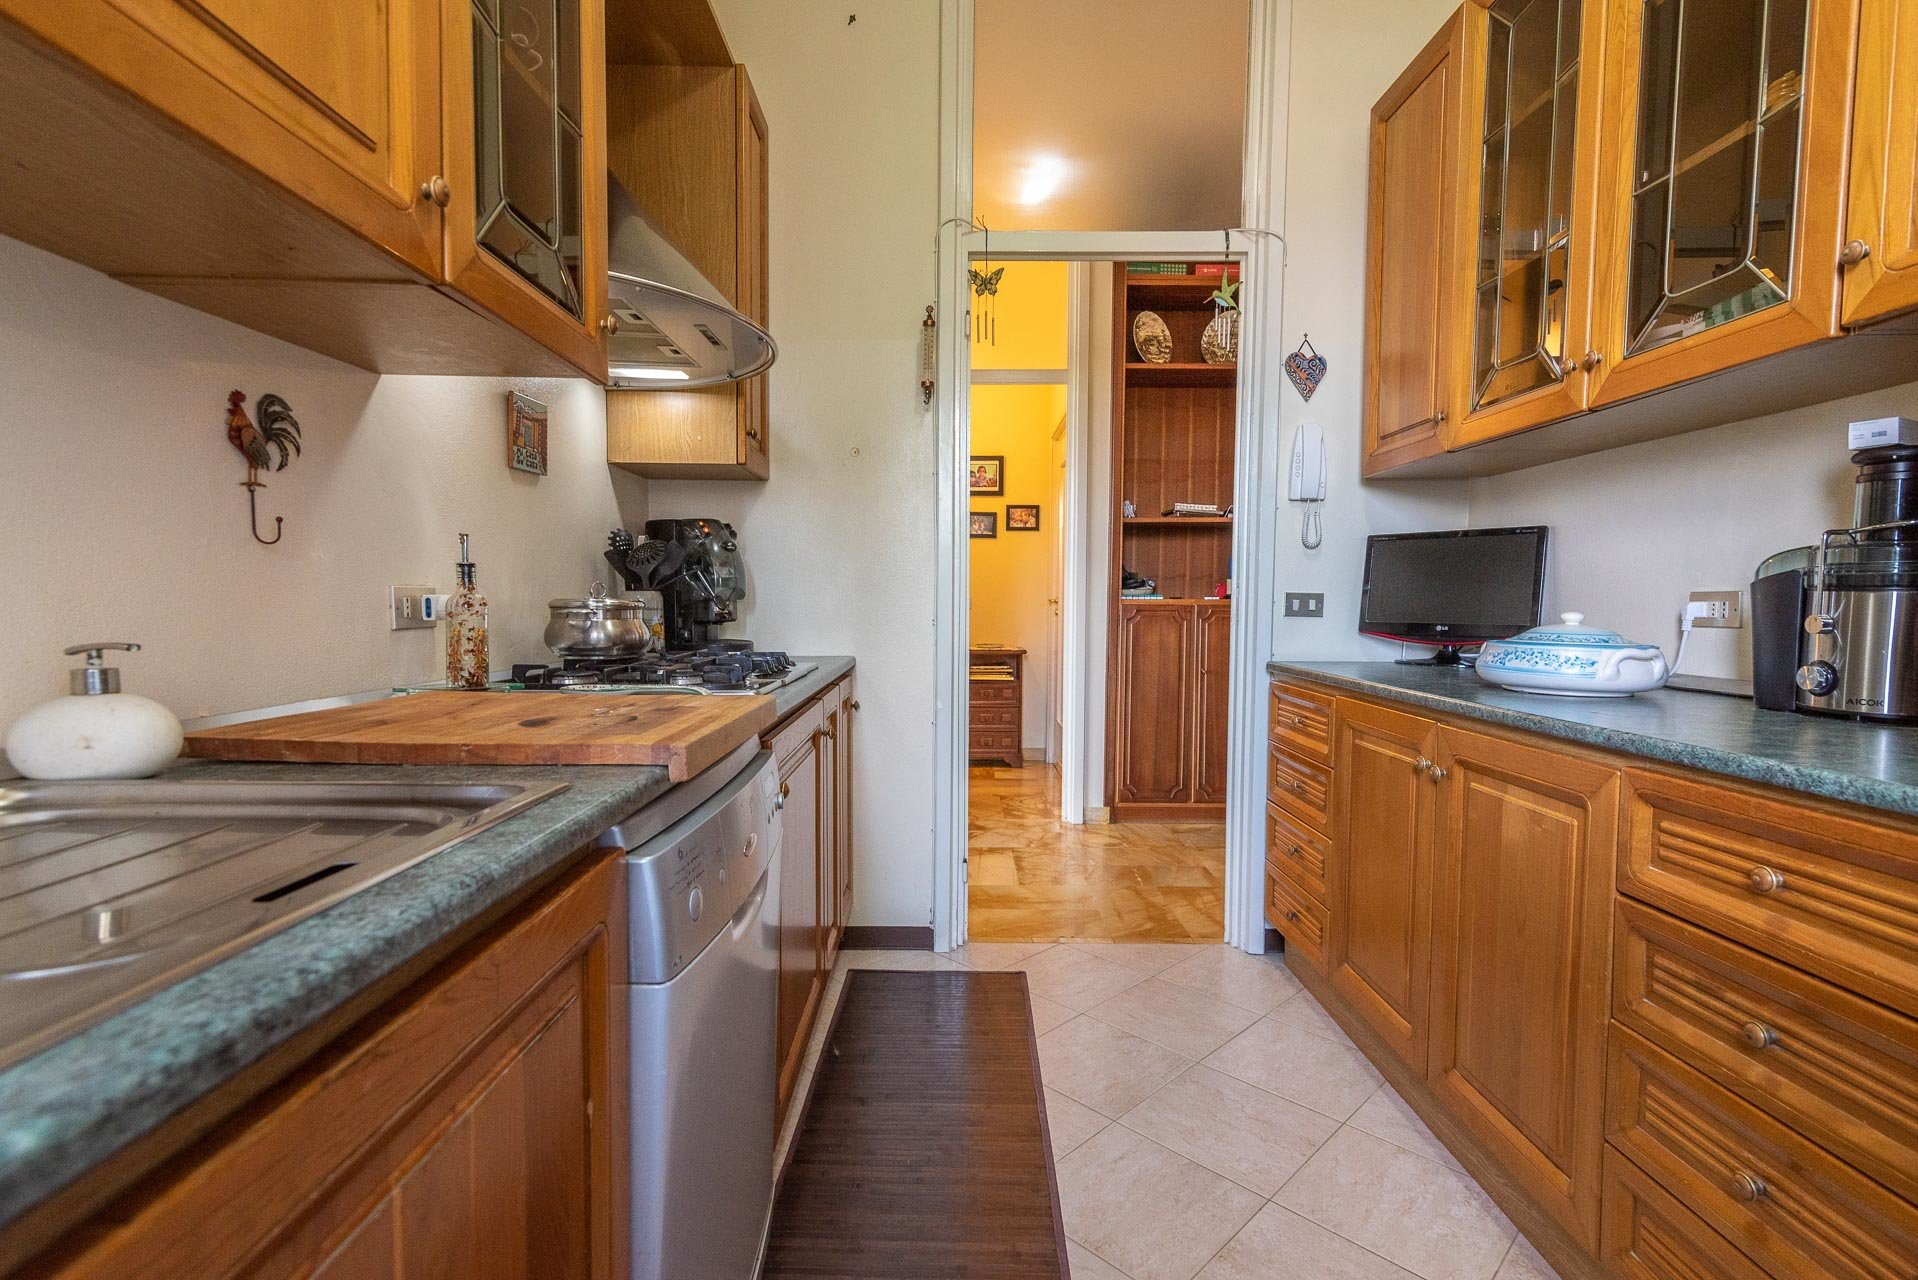 Apartment or sale in Stresa centre - kitchen